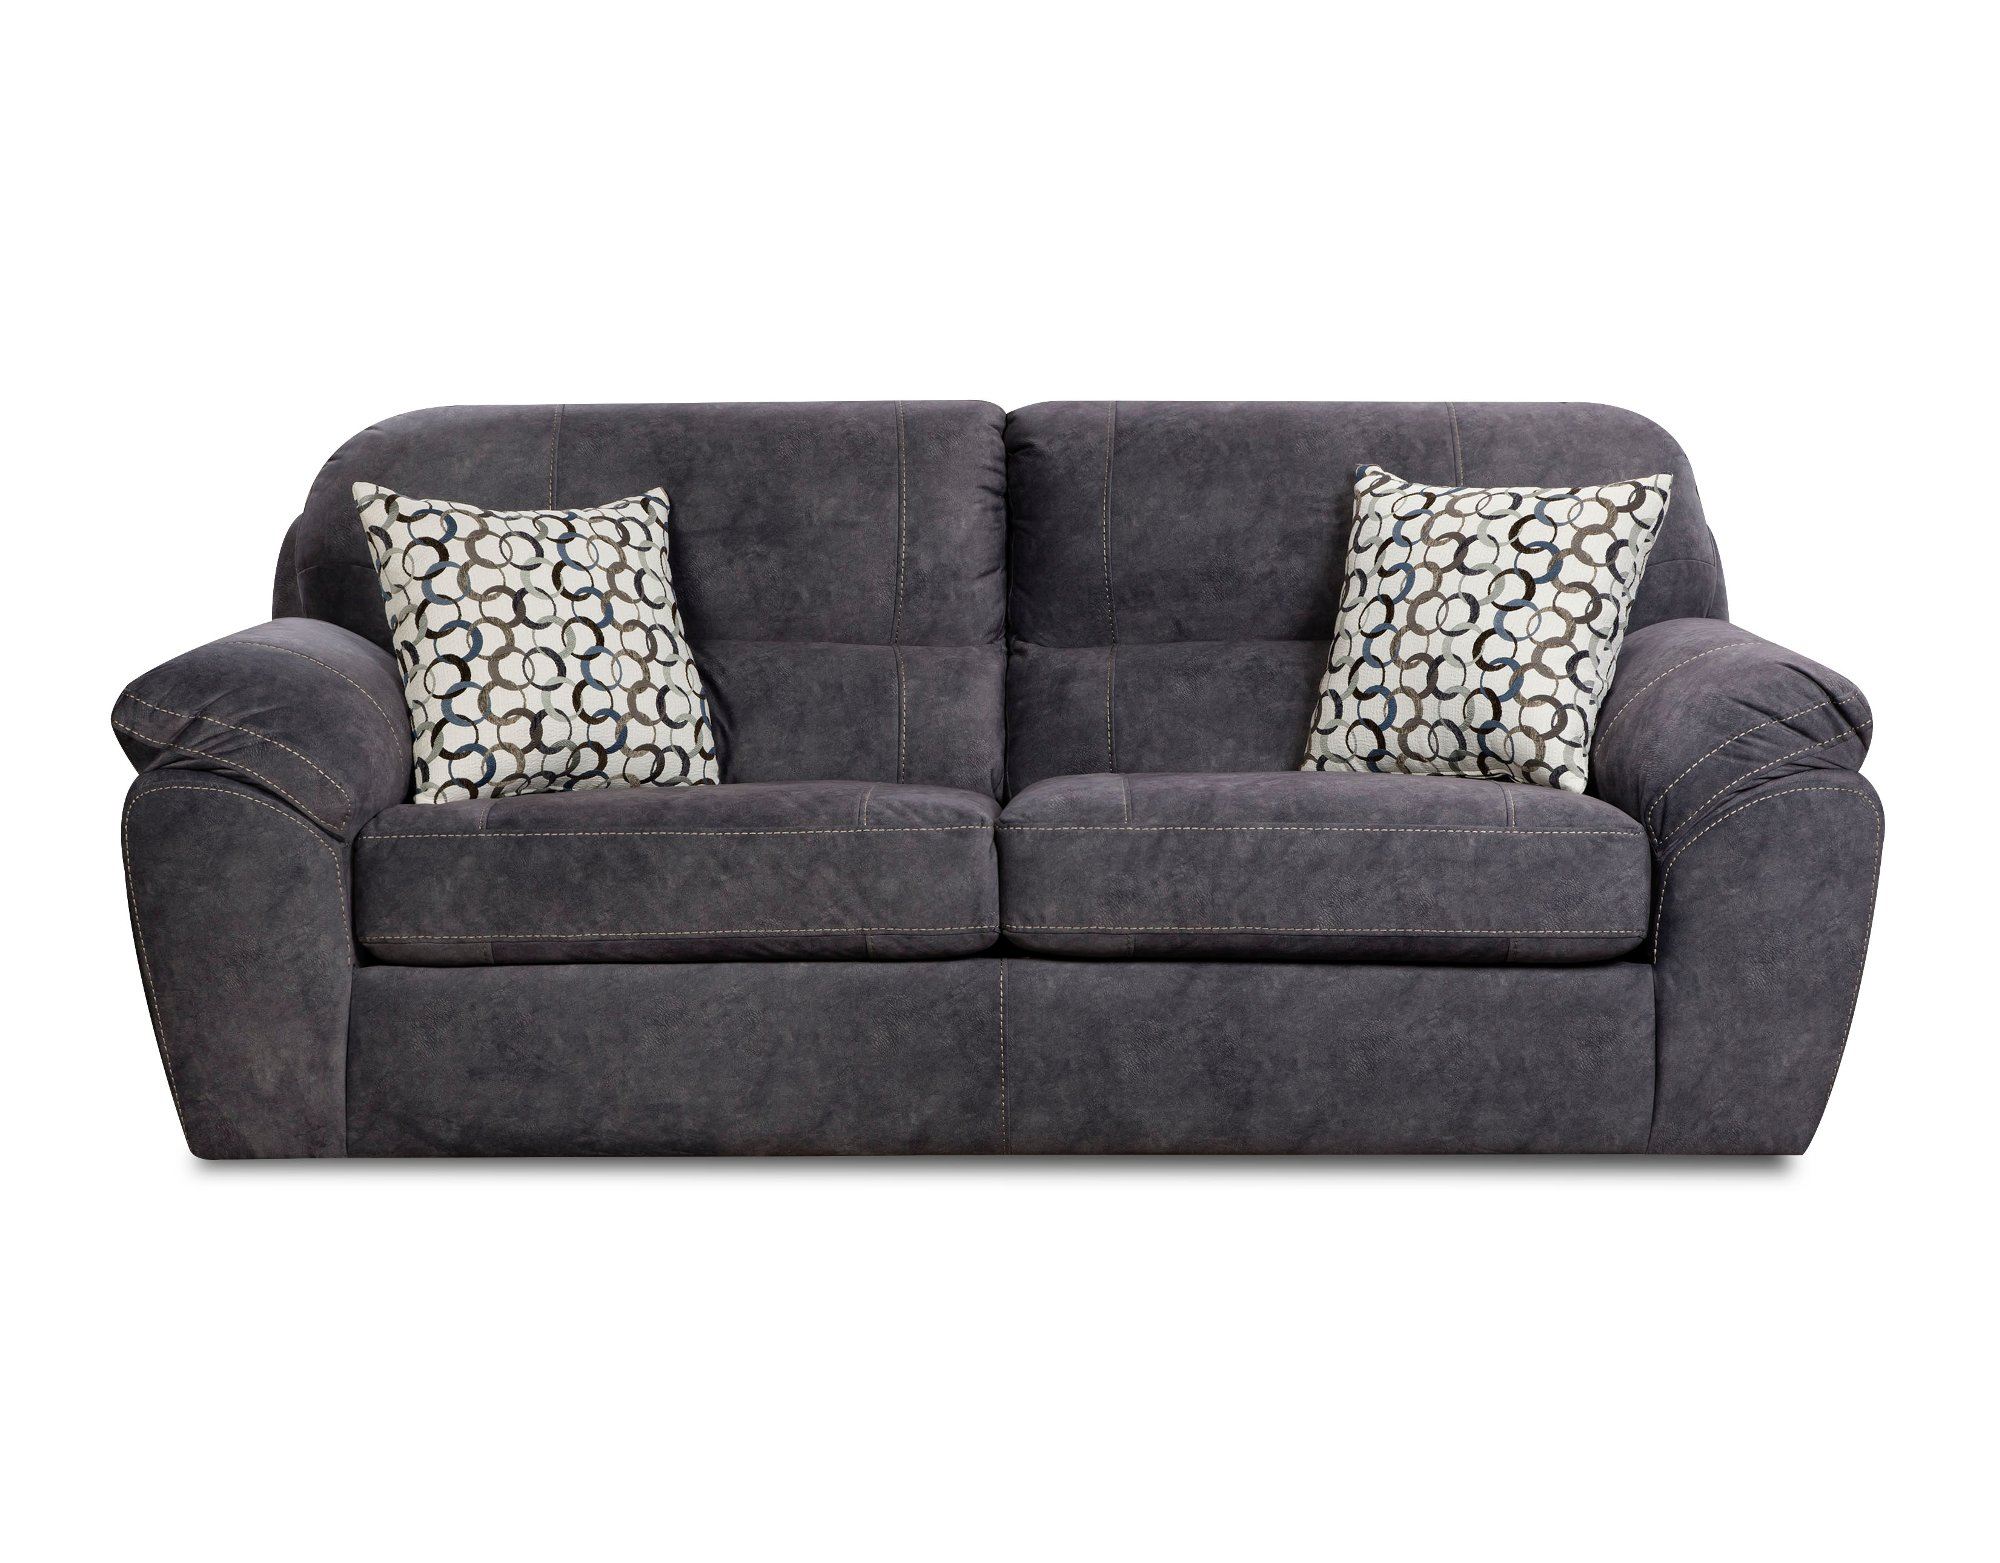 Casual Contemporary Steel Blue Sofa Bed & Loveseat Set ...